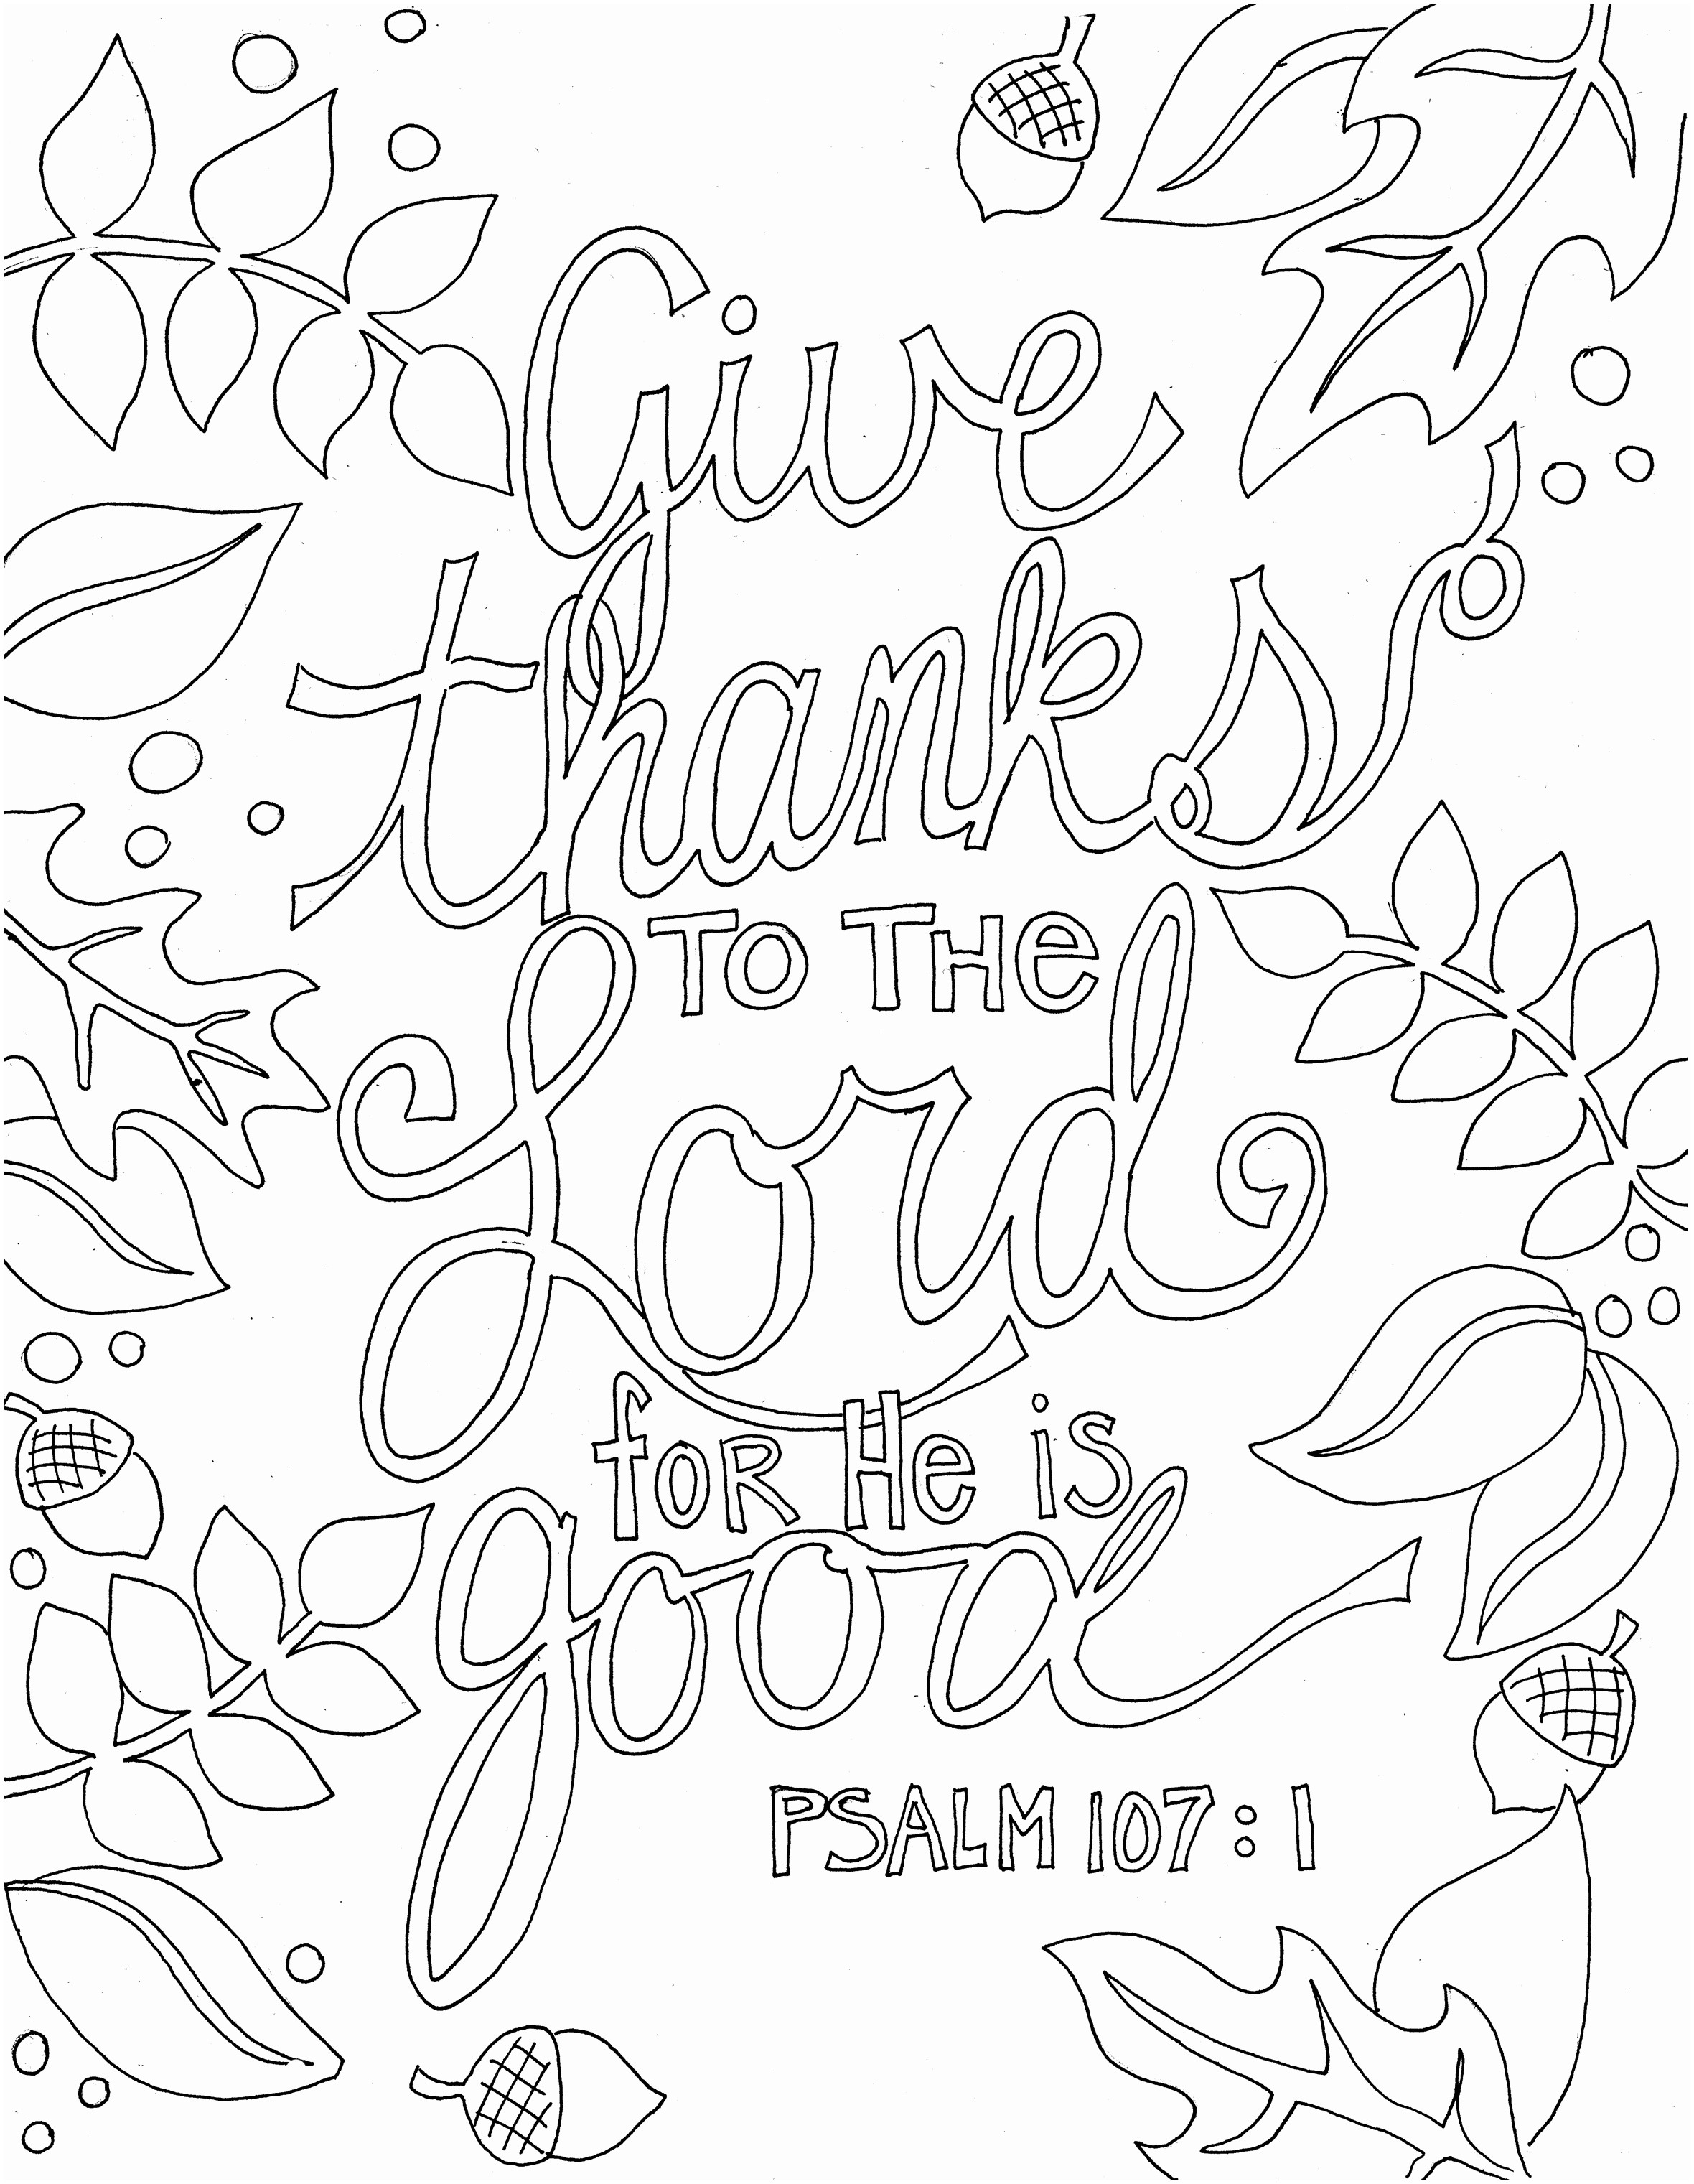 christian coloring pages with scripture Collection-Free Printable Bible Coloring Pages With Scriptures Elegant Best Od Free Printable Bible Coloring Pages 13-j